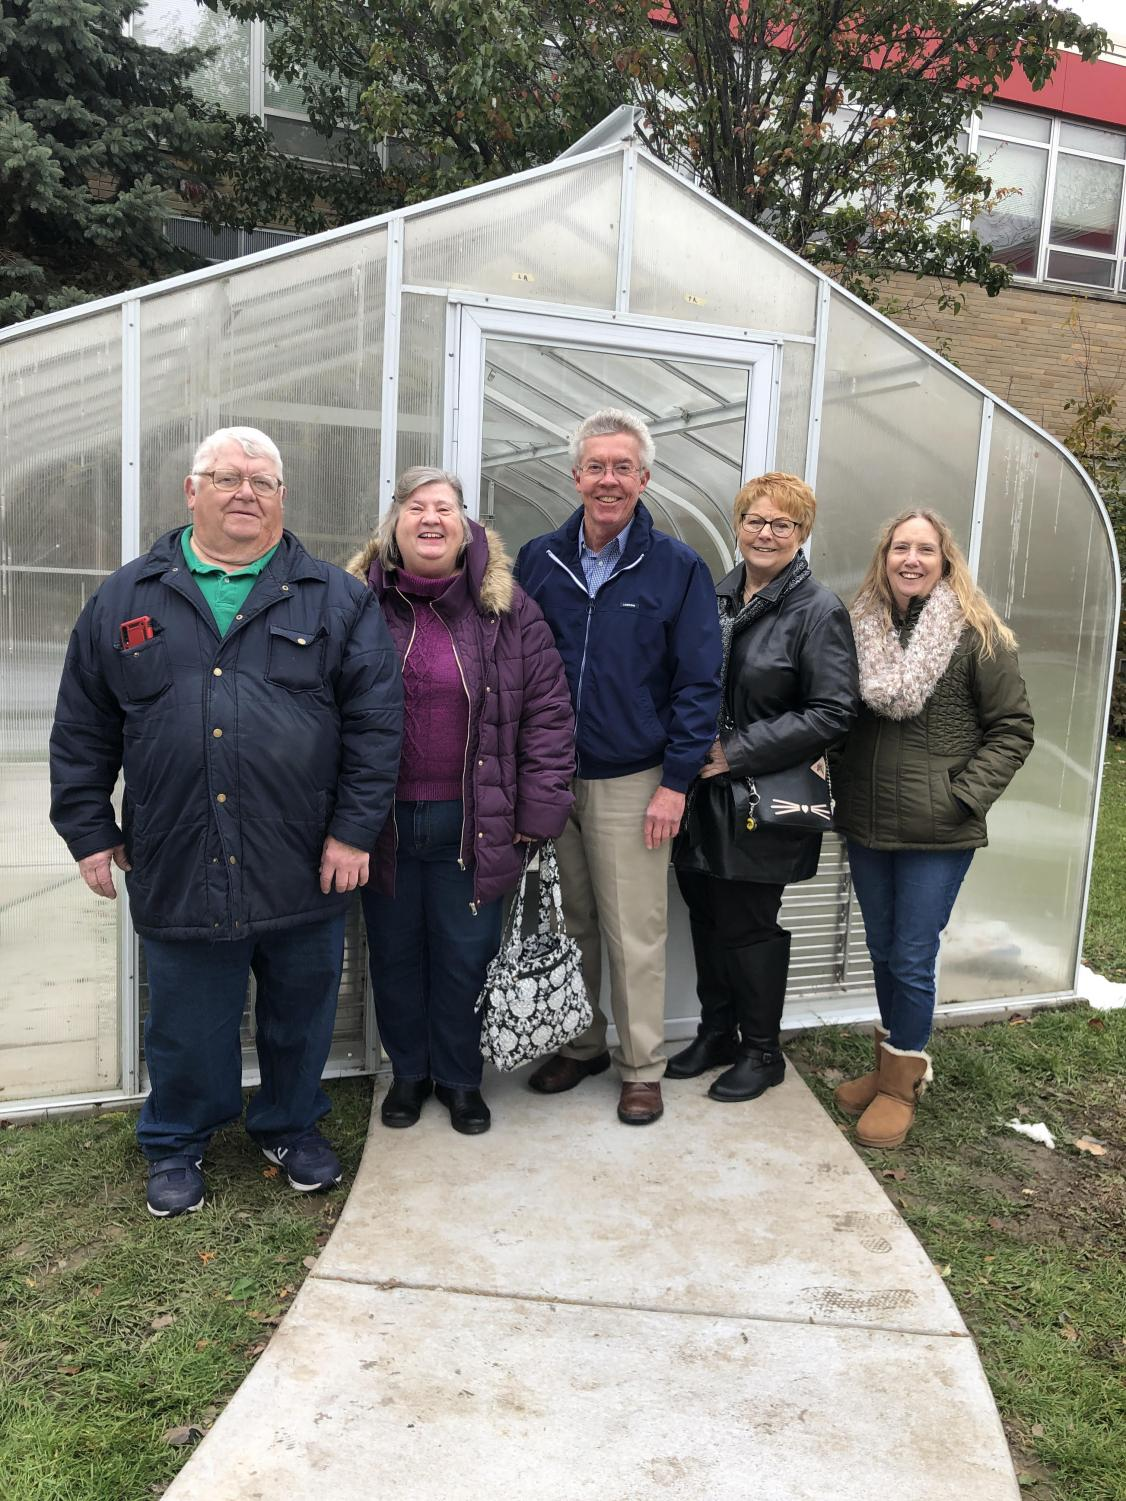 "From left to right: 1969 West graduates Charles Hudson, Jan Rangel, Steve Arp, Bobbie Noel-Behrens, and Jo Faris are members of the West's class of 69' reunion committee. They are in in front of the greenhouse that they donated $4,000 to on Nov. 1. 2019. ""My years at West were so important in establishing my personal core values. Friendships made at West have endured 50 years and is the main reason for large attendance at our class reunions. The greenhouse project has been the perfect way for the class of 69' to show our gratitude and 'pay it forward' to current and future West students,"" class of  69' West graduate Steve Arp said."